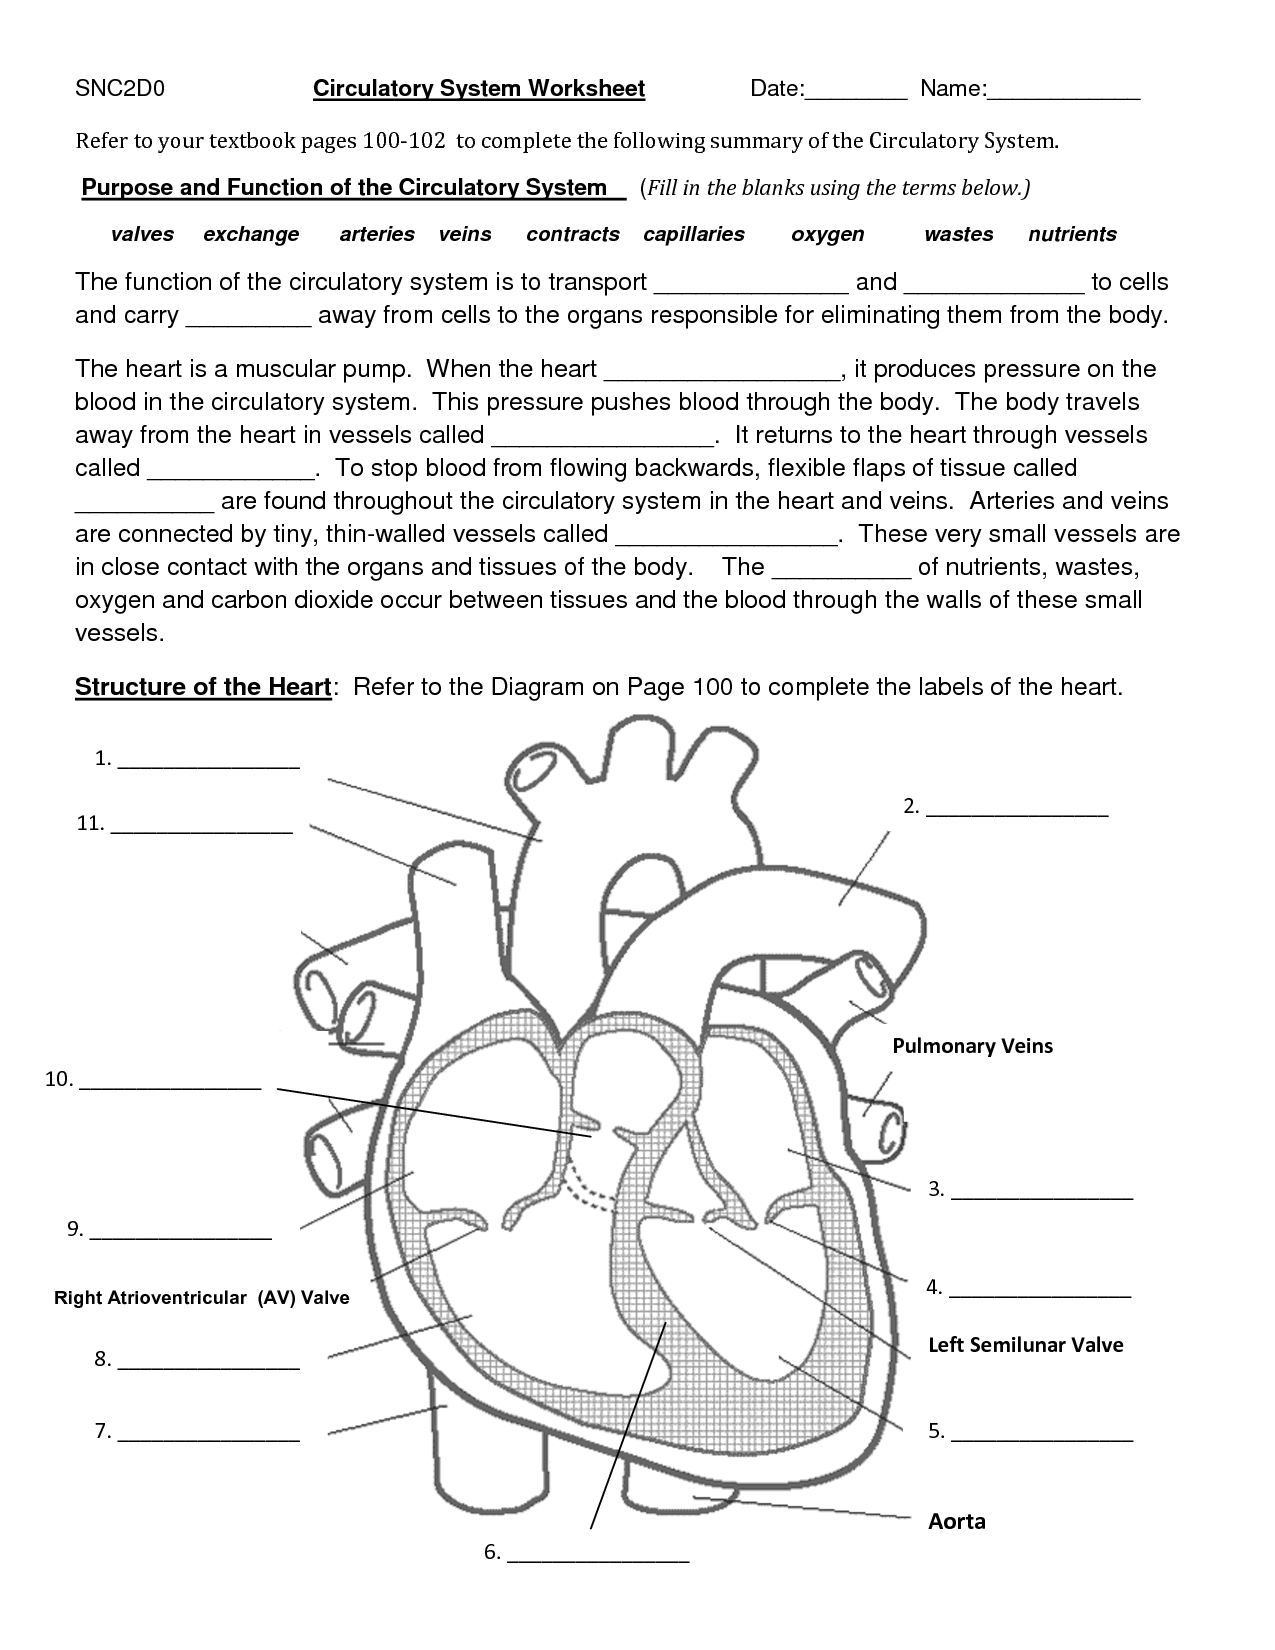 circulatory system worksheet worksheet pinterest worksheets circulatory system and body. Black Bedroom Furniture Sets. Home Design Ideas